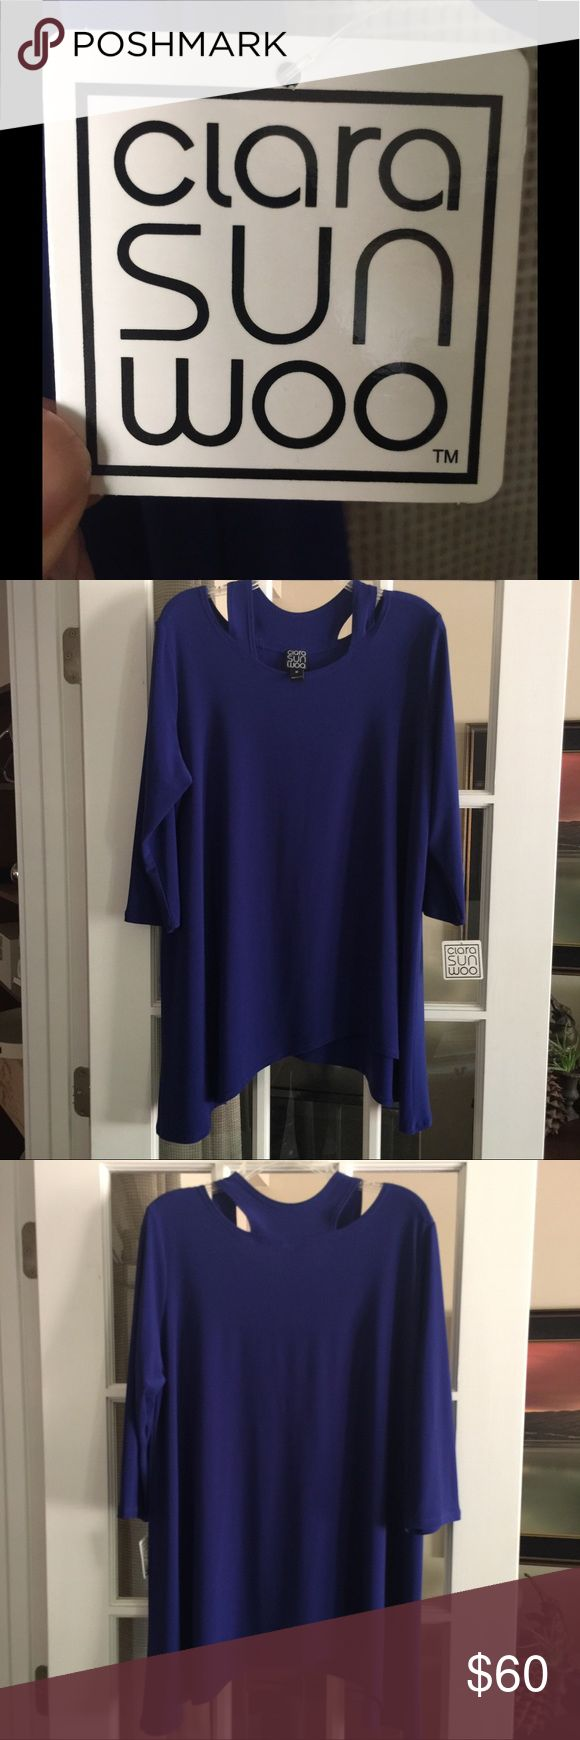 Gorgeous cobalt coverage! Wear this Clara Sunwoo top over a pencil skirt or leggings. Narrow cut-out on shoulders shows just a sliver of skin. Bra straps are completely covered. Shark bite hem. My favorite color. NWT. Clara Sunwoo Tops Tunics